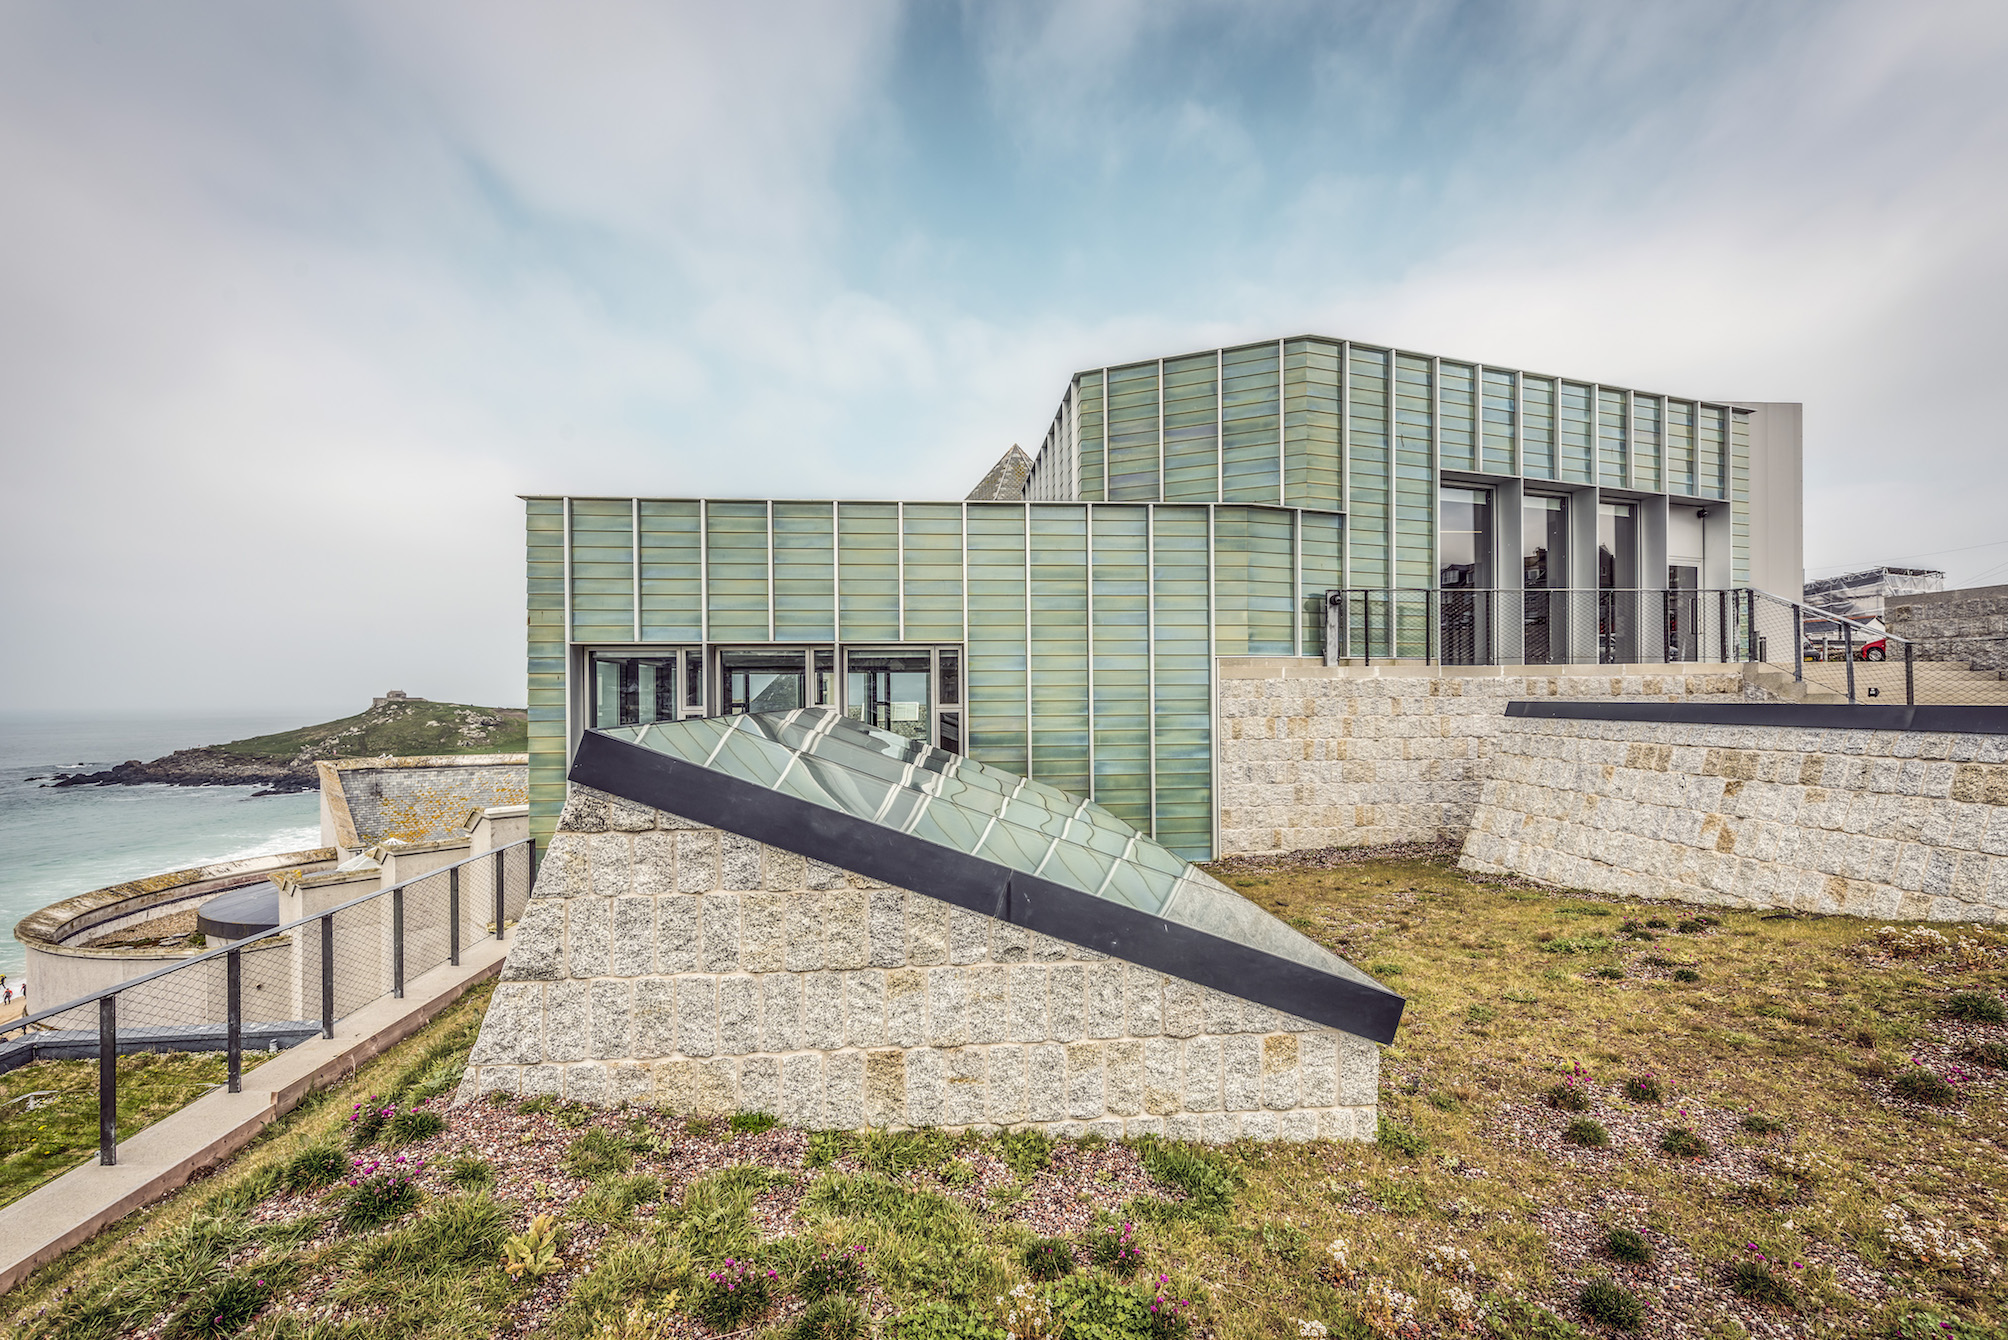 Tate St Ives 'carved out of rock' is Museum of the Year